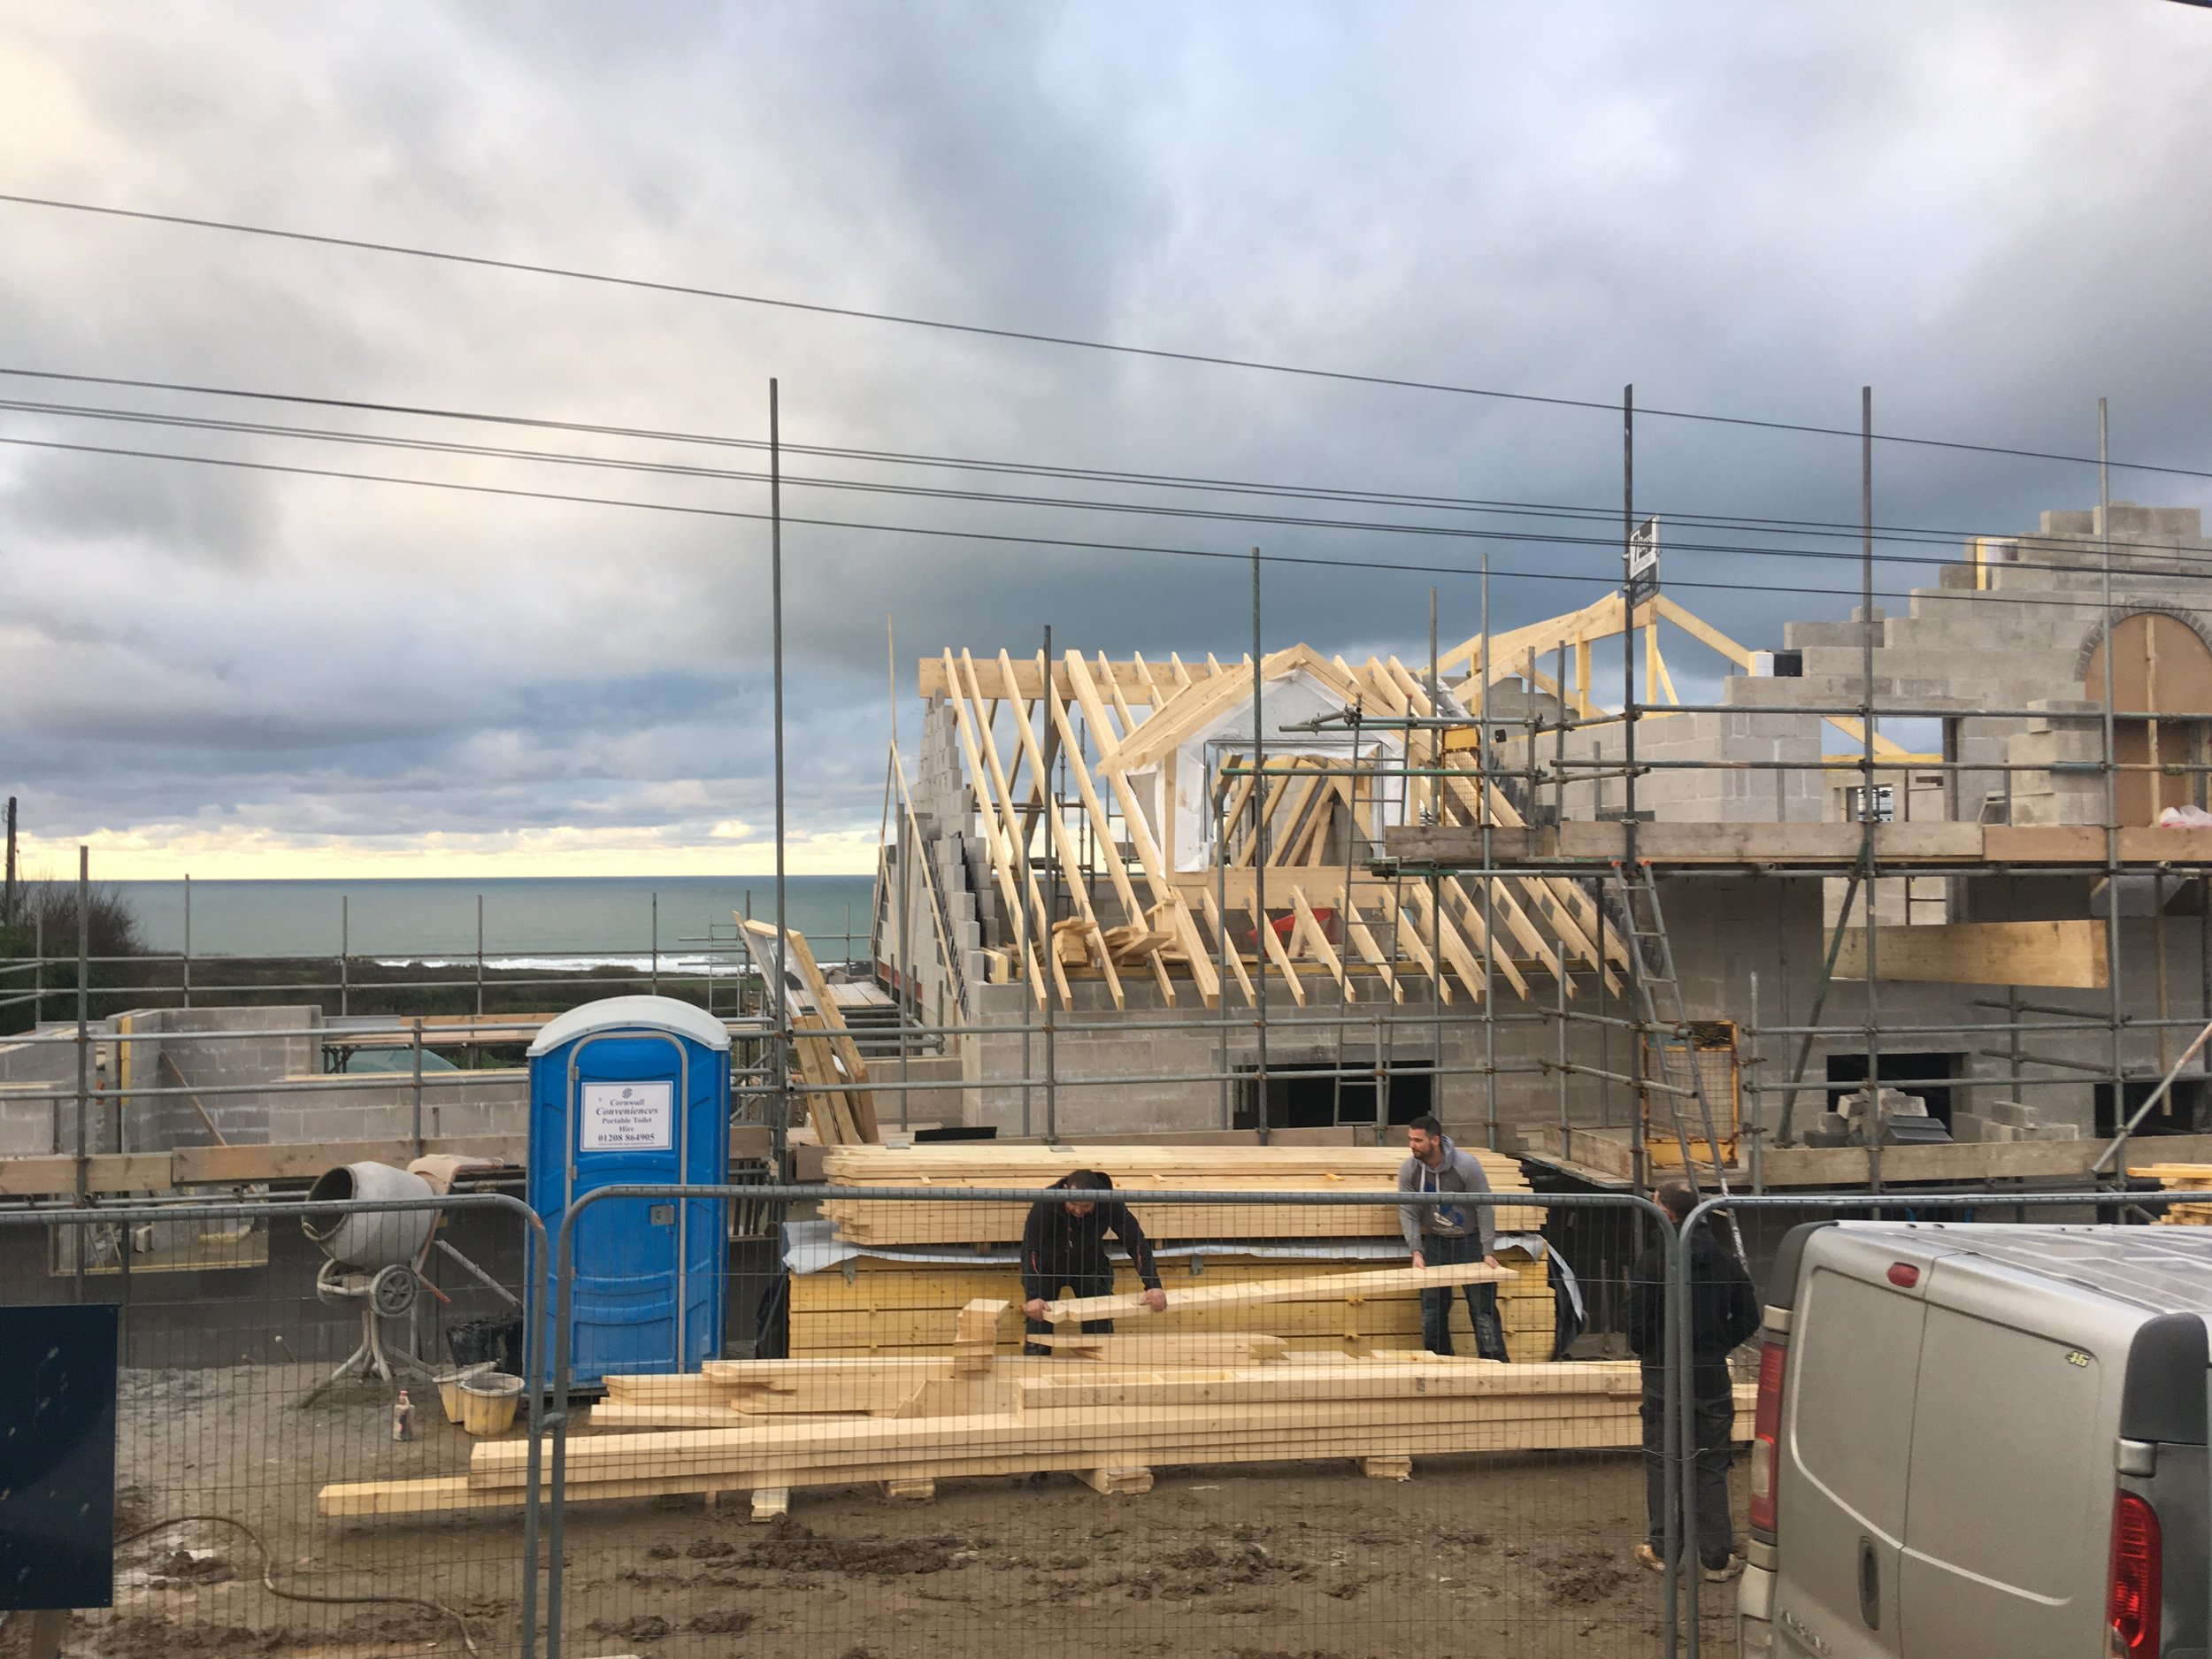 Roofing begins (March 8th 2019)